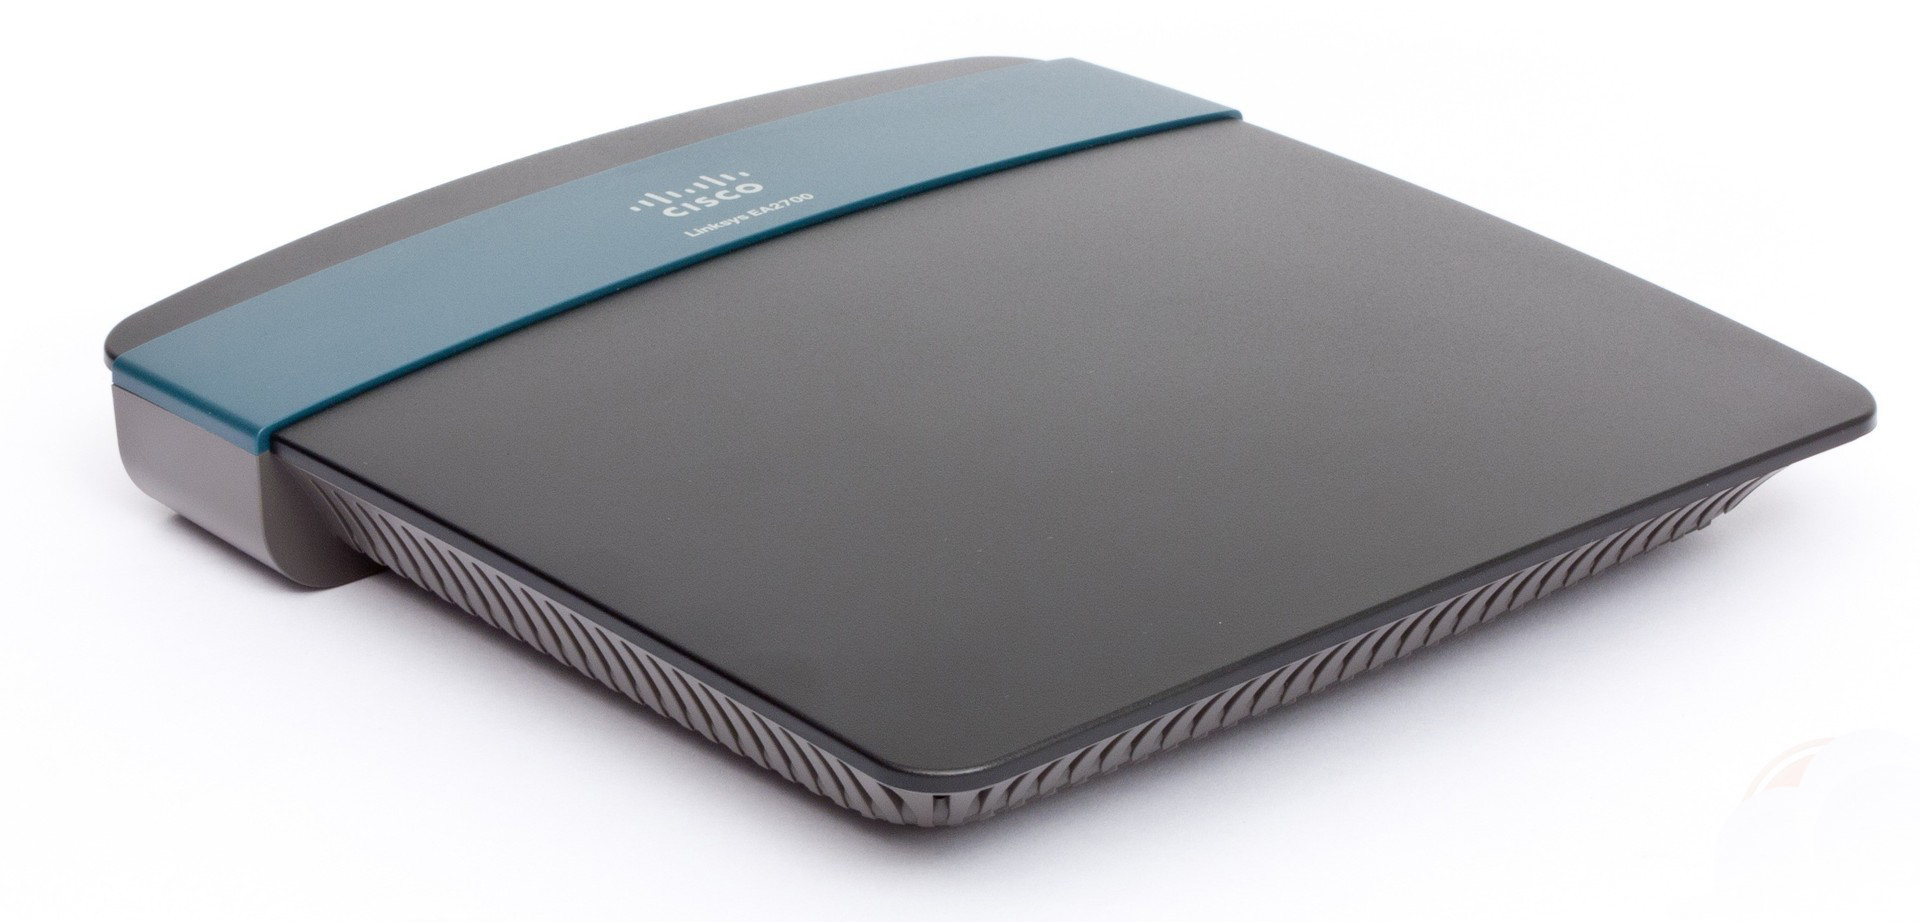 How to Secure the Linksys EA2700 (N600) Wireless Router